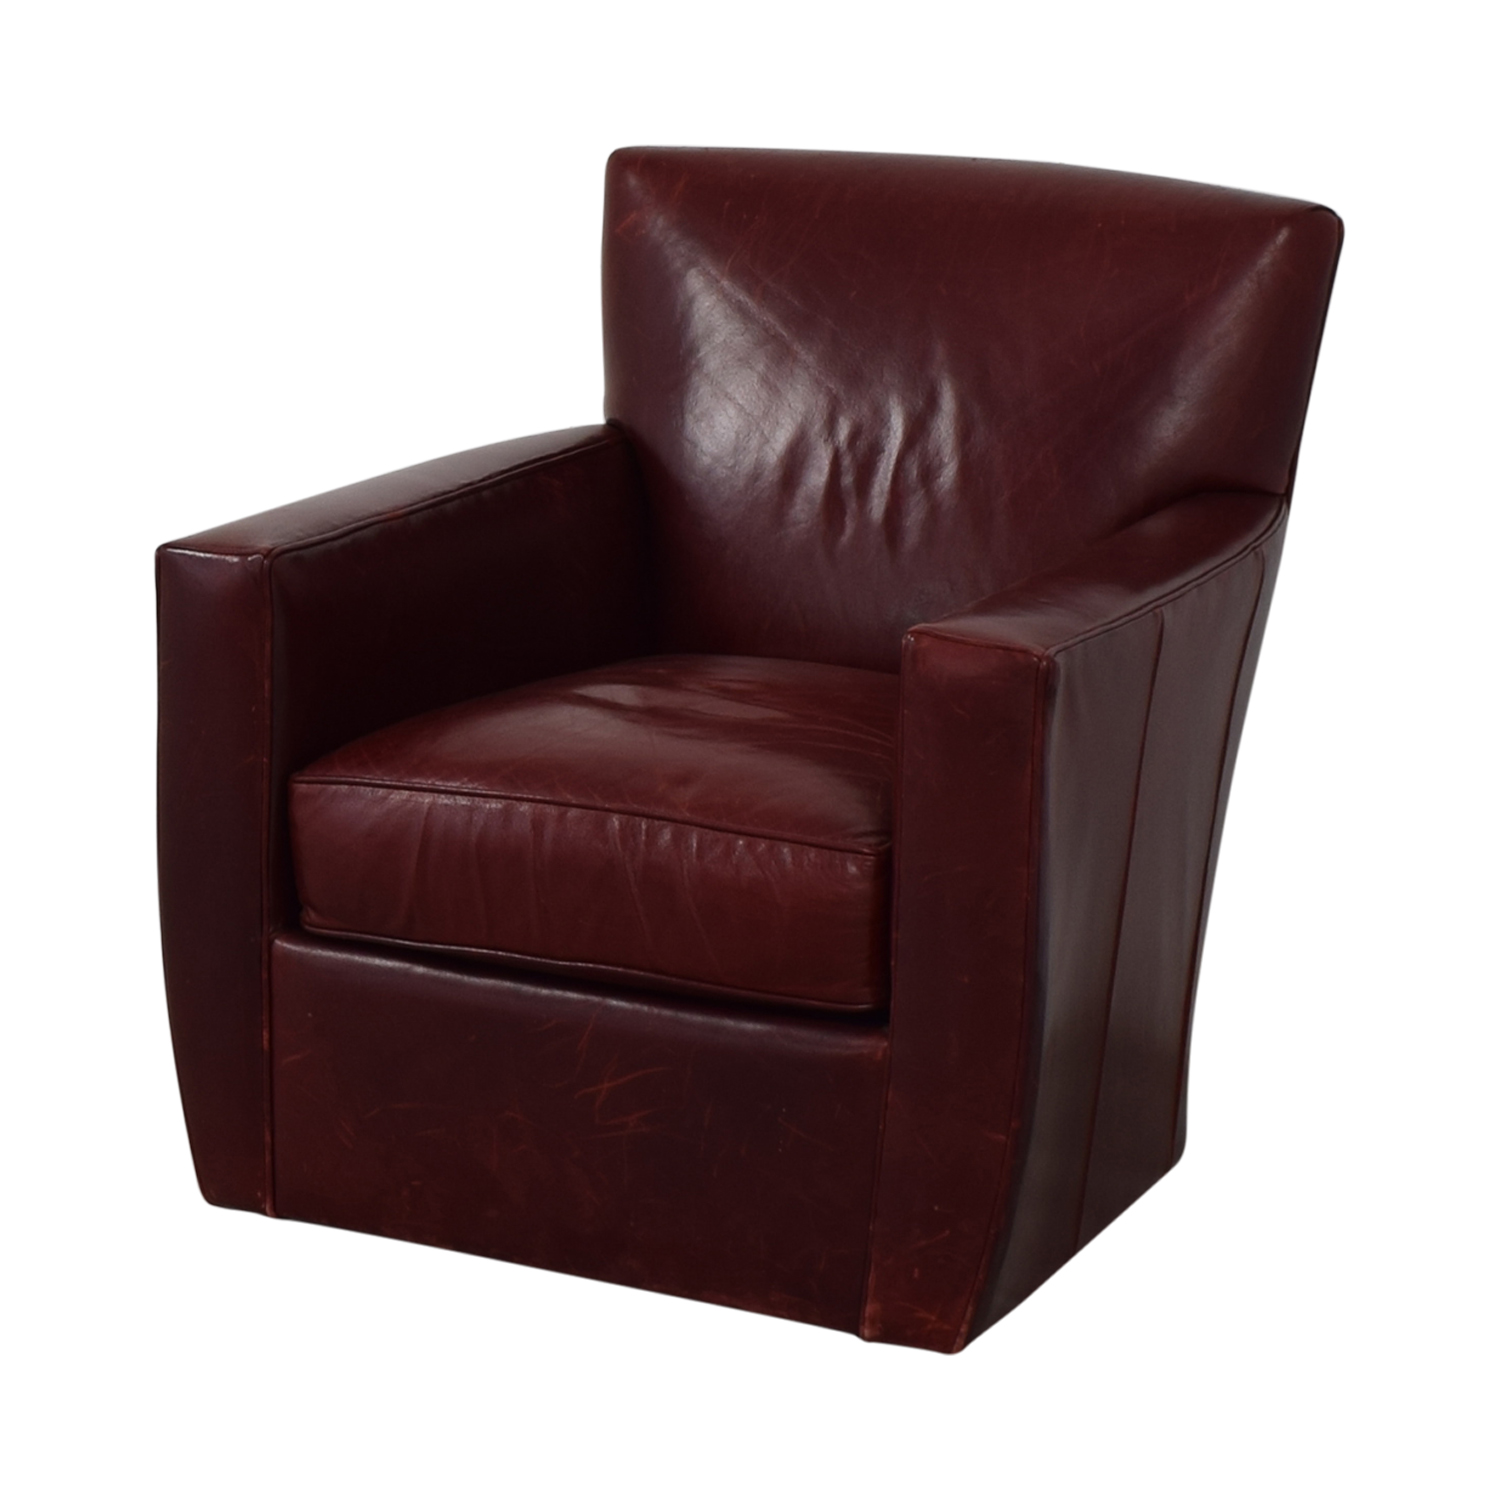 Crate & Barrel Crate & Barrel Swivel Red Accent Chair nyc